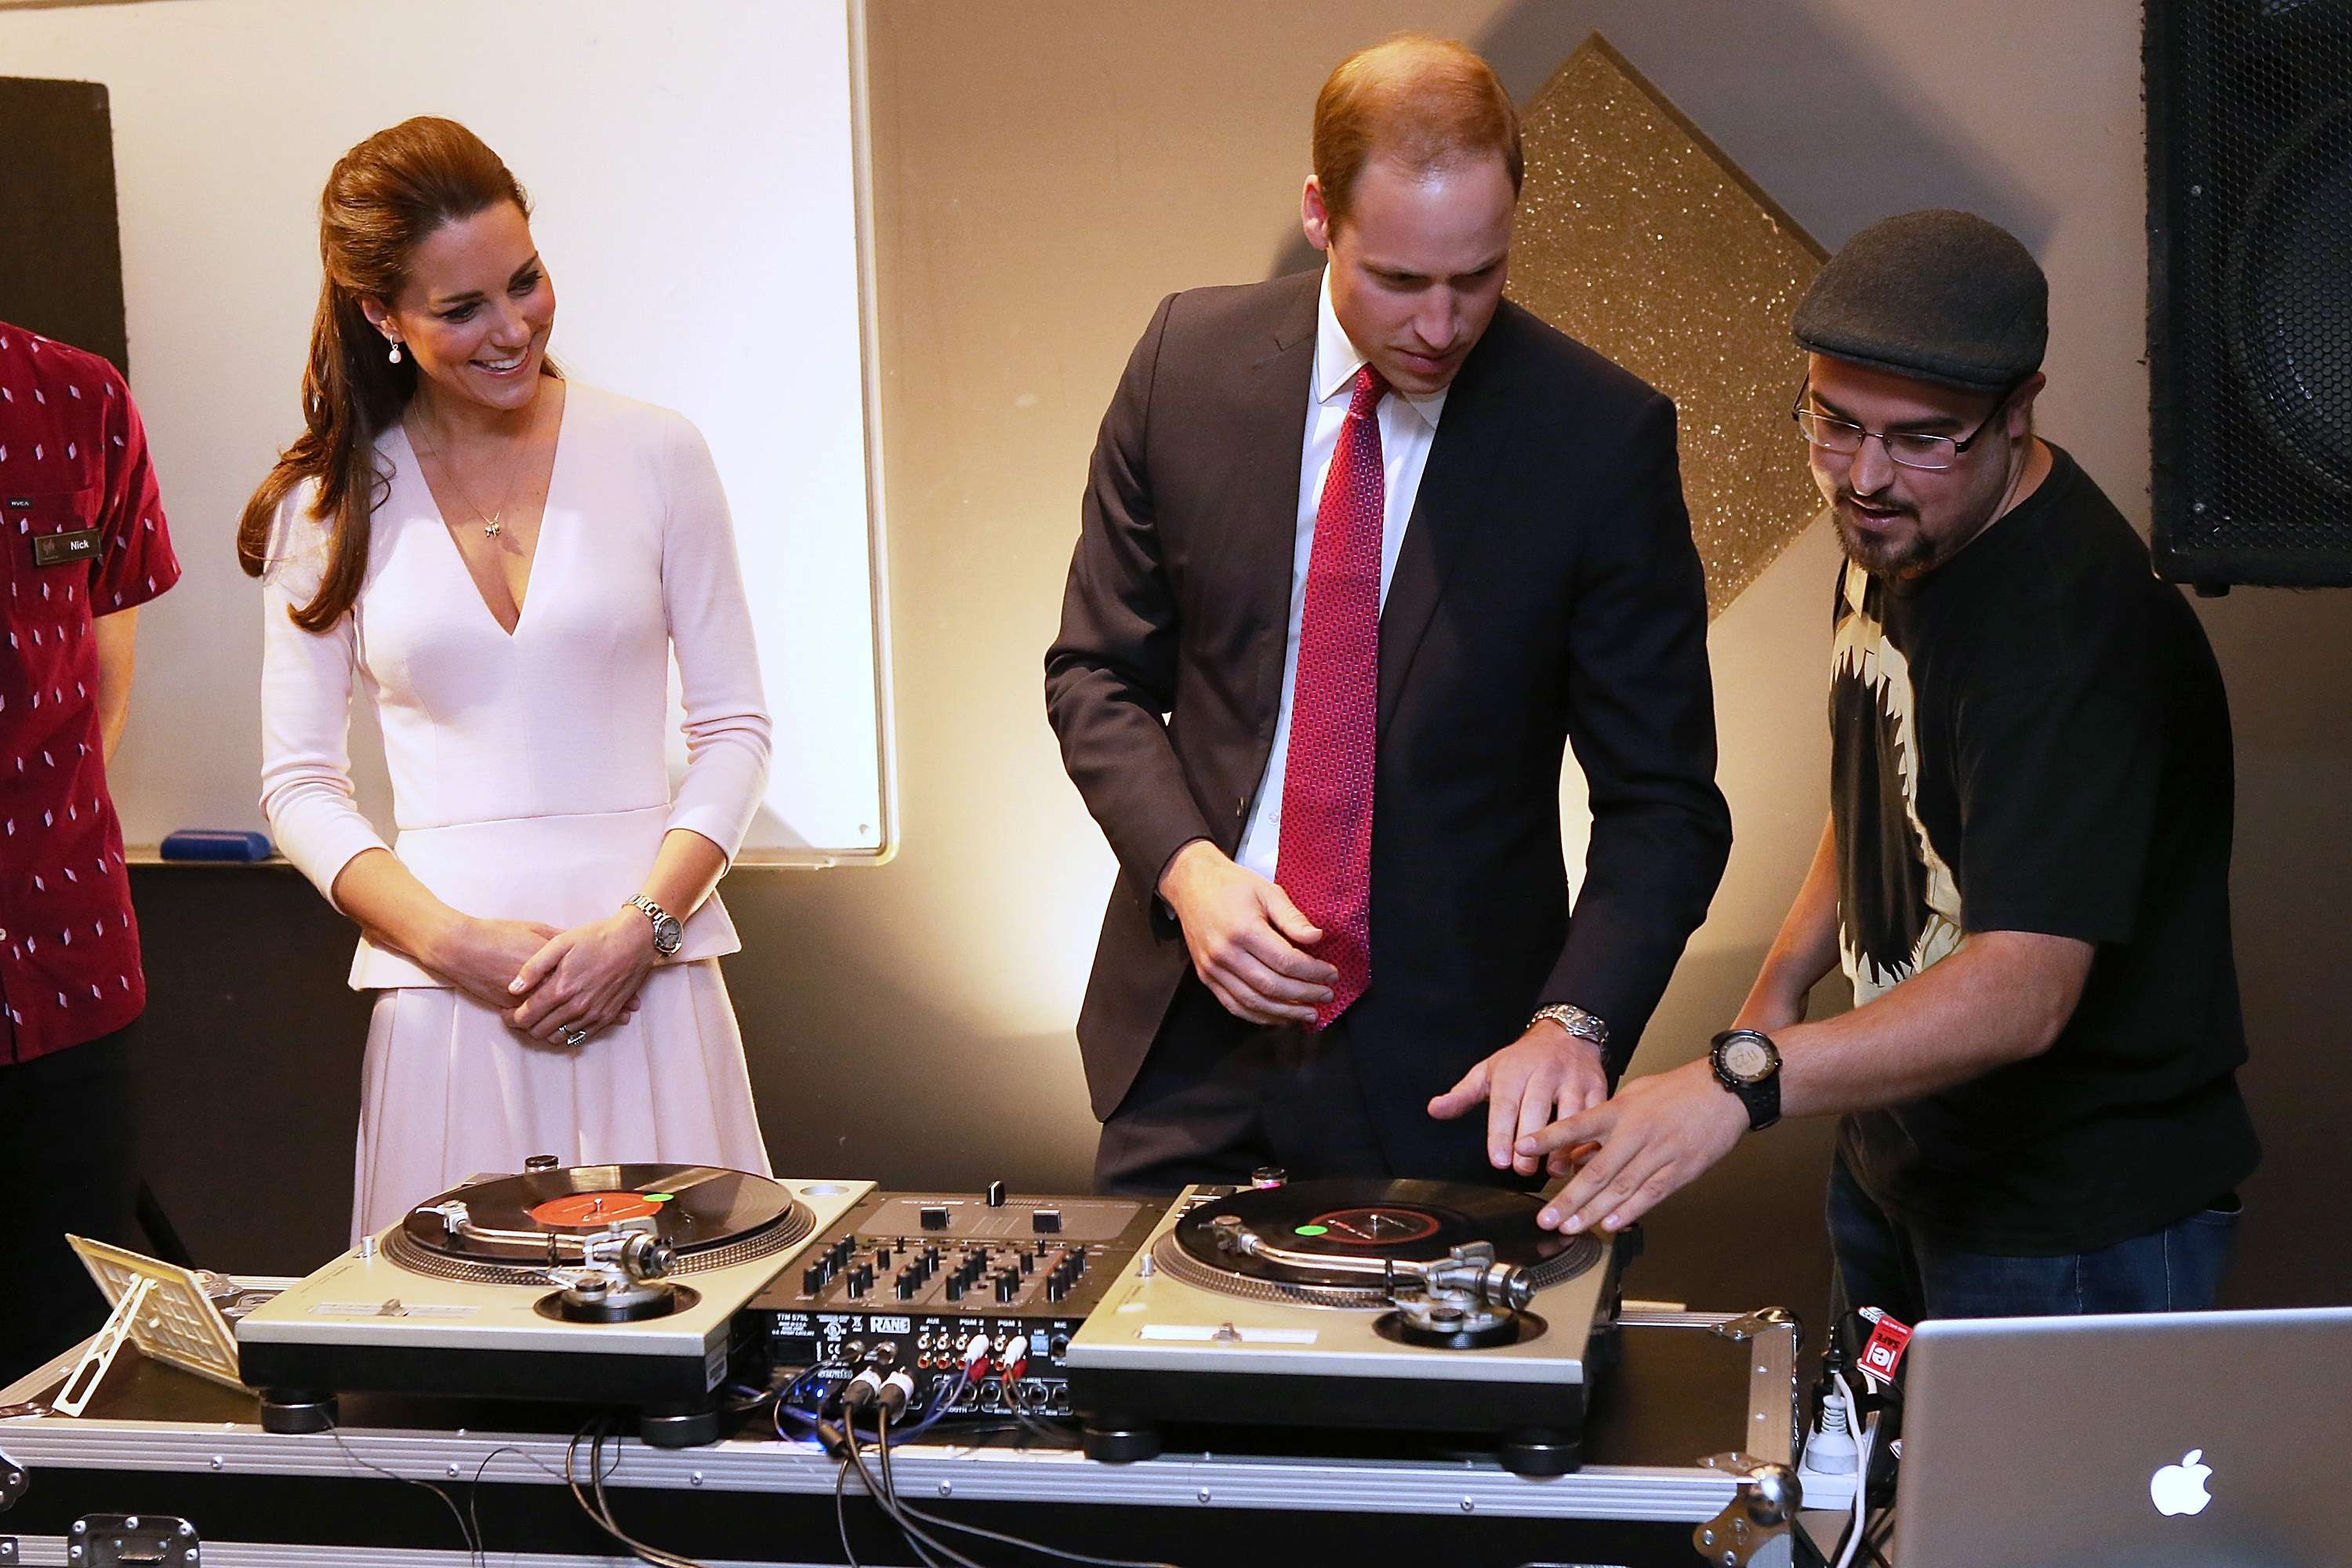 William e Kate se arriscam como DJs na Austrália